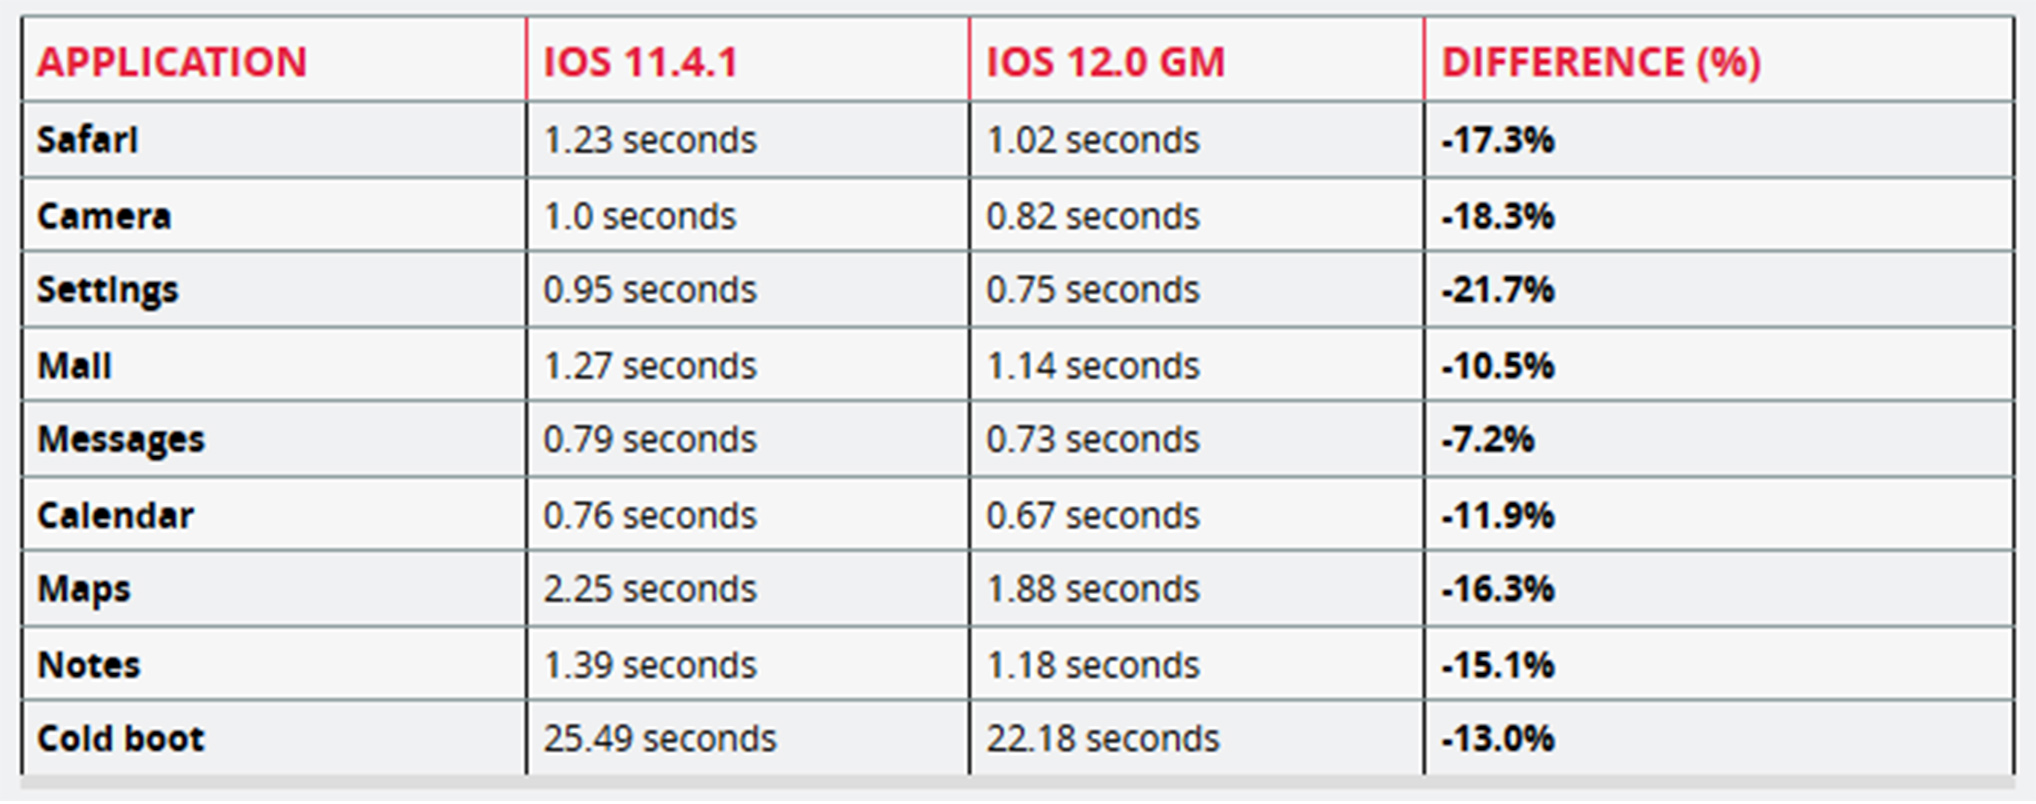 iPhone 6 Plus test results